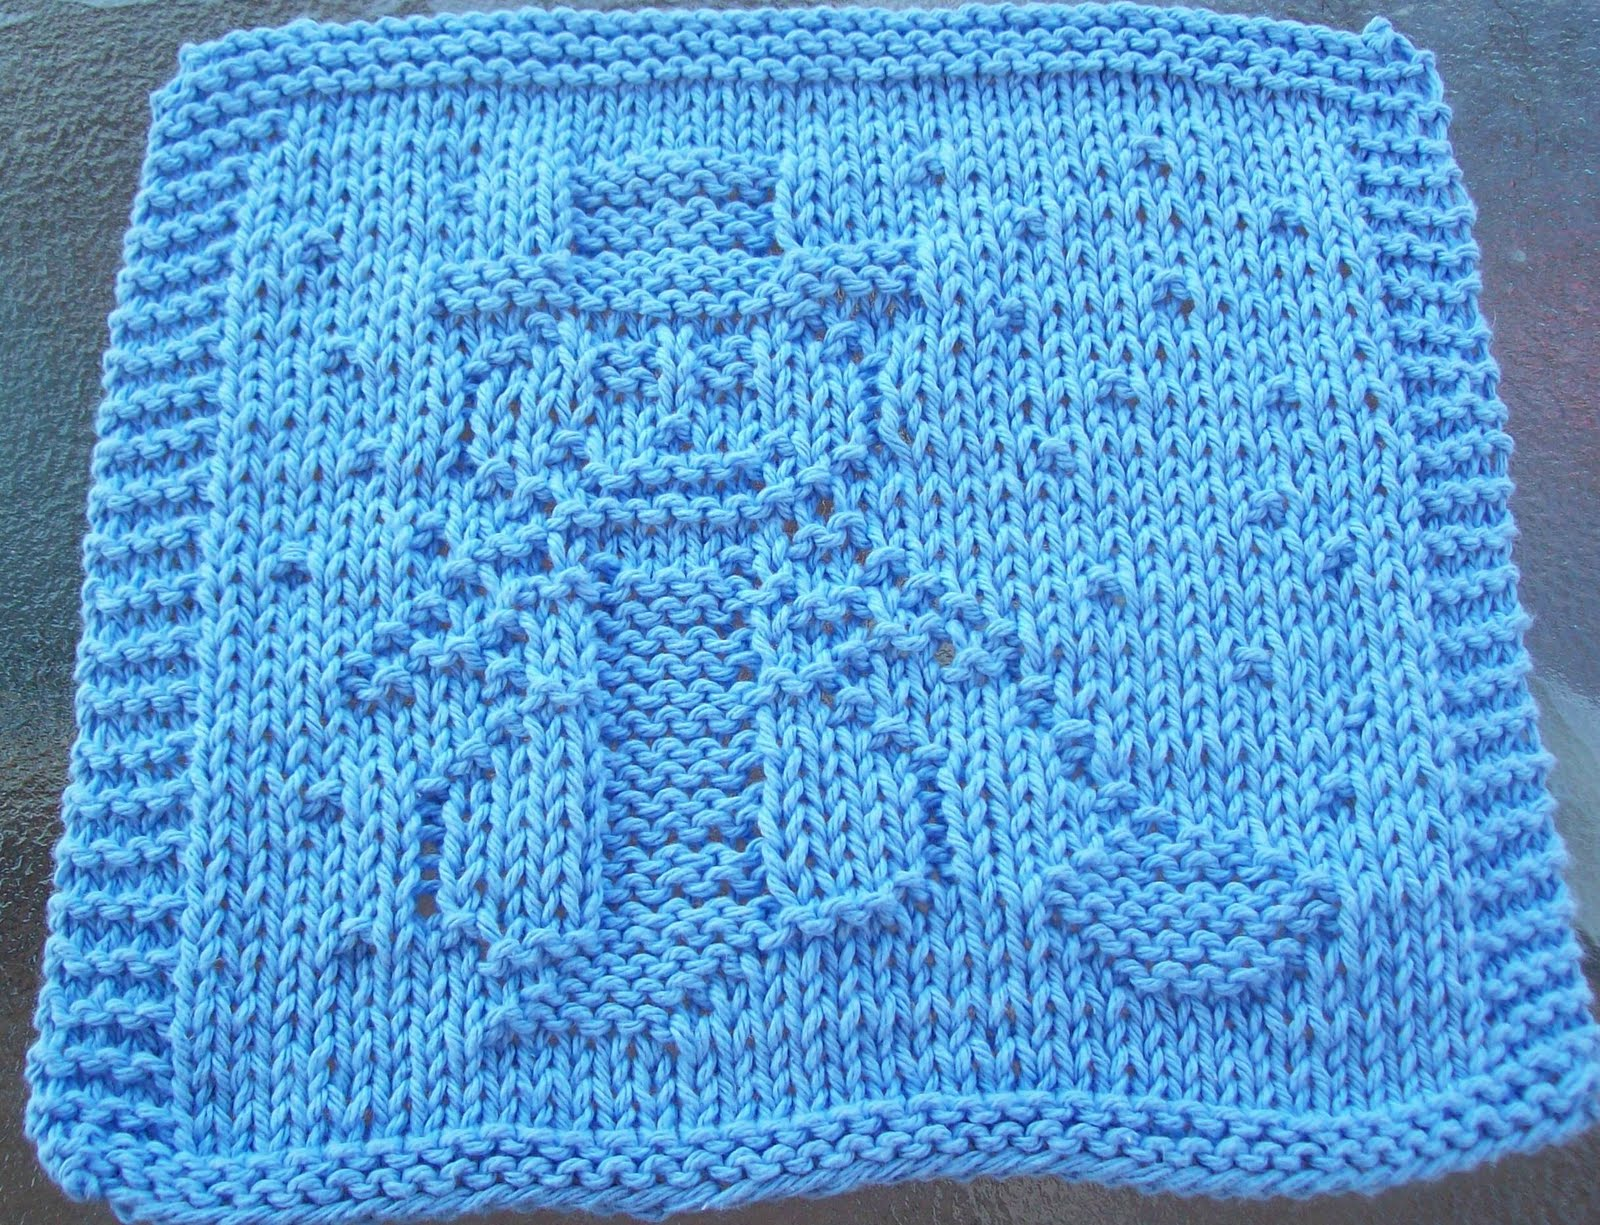 Dish Cloth Knitting Pattern : Knitting Dishcloth Patterns Fish